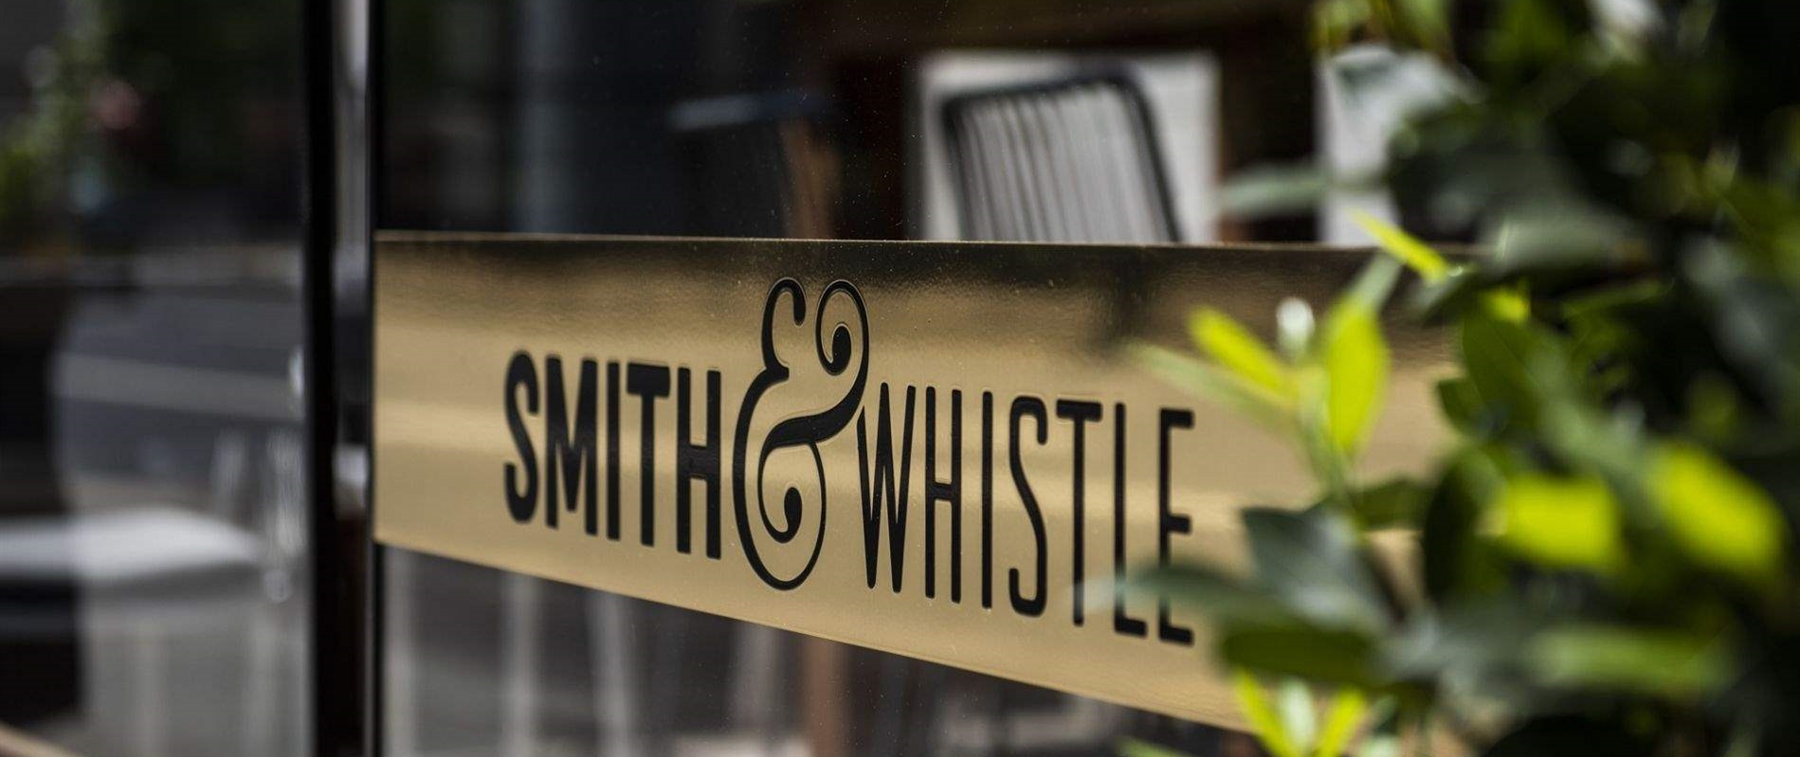 Smith and Whistle